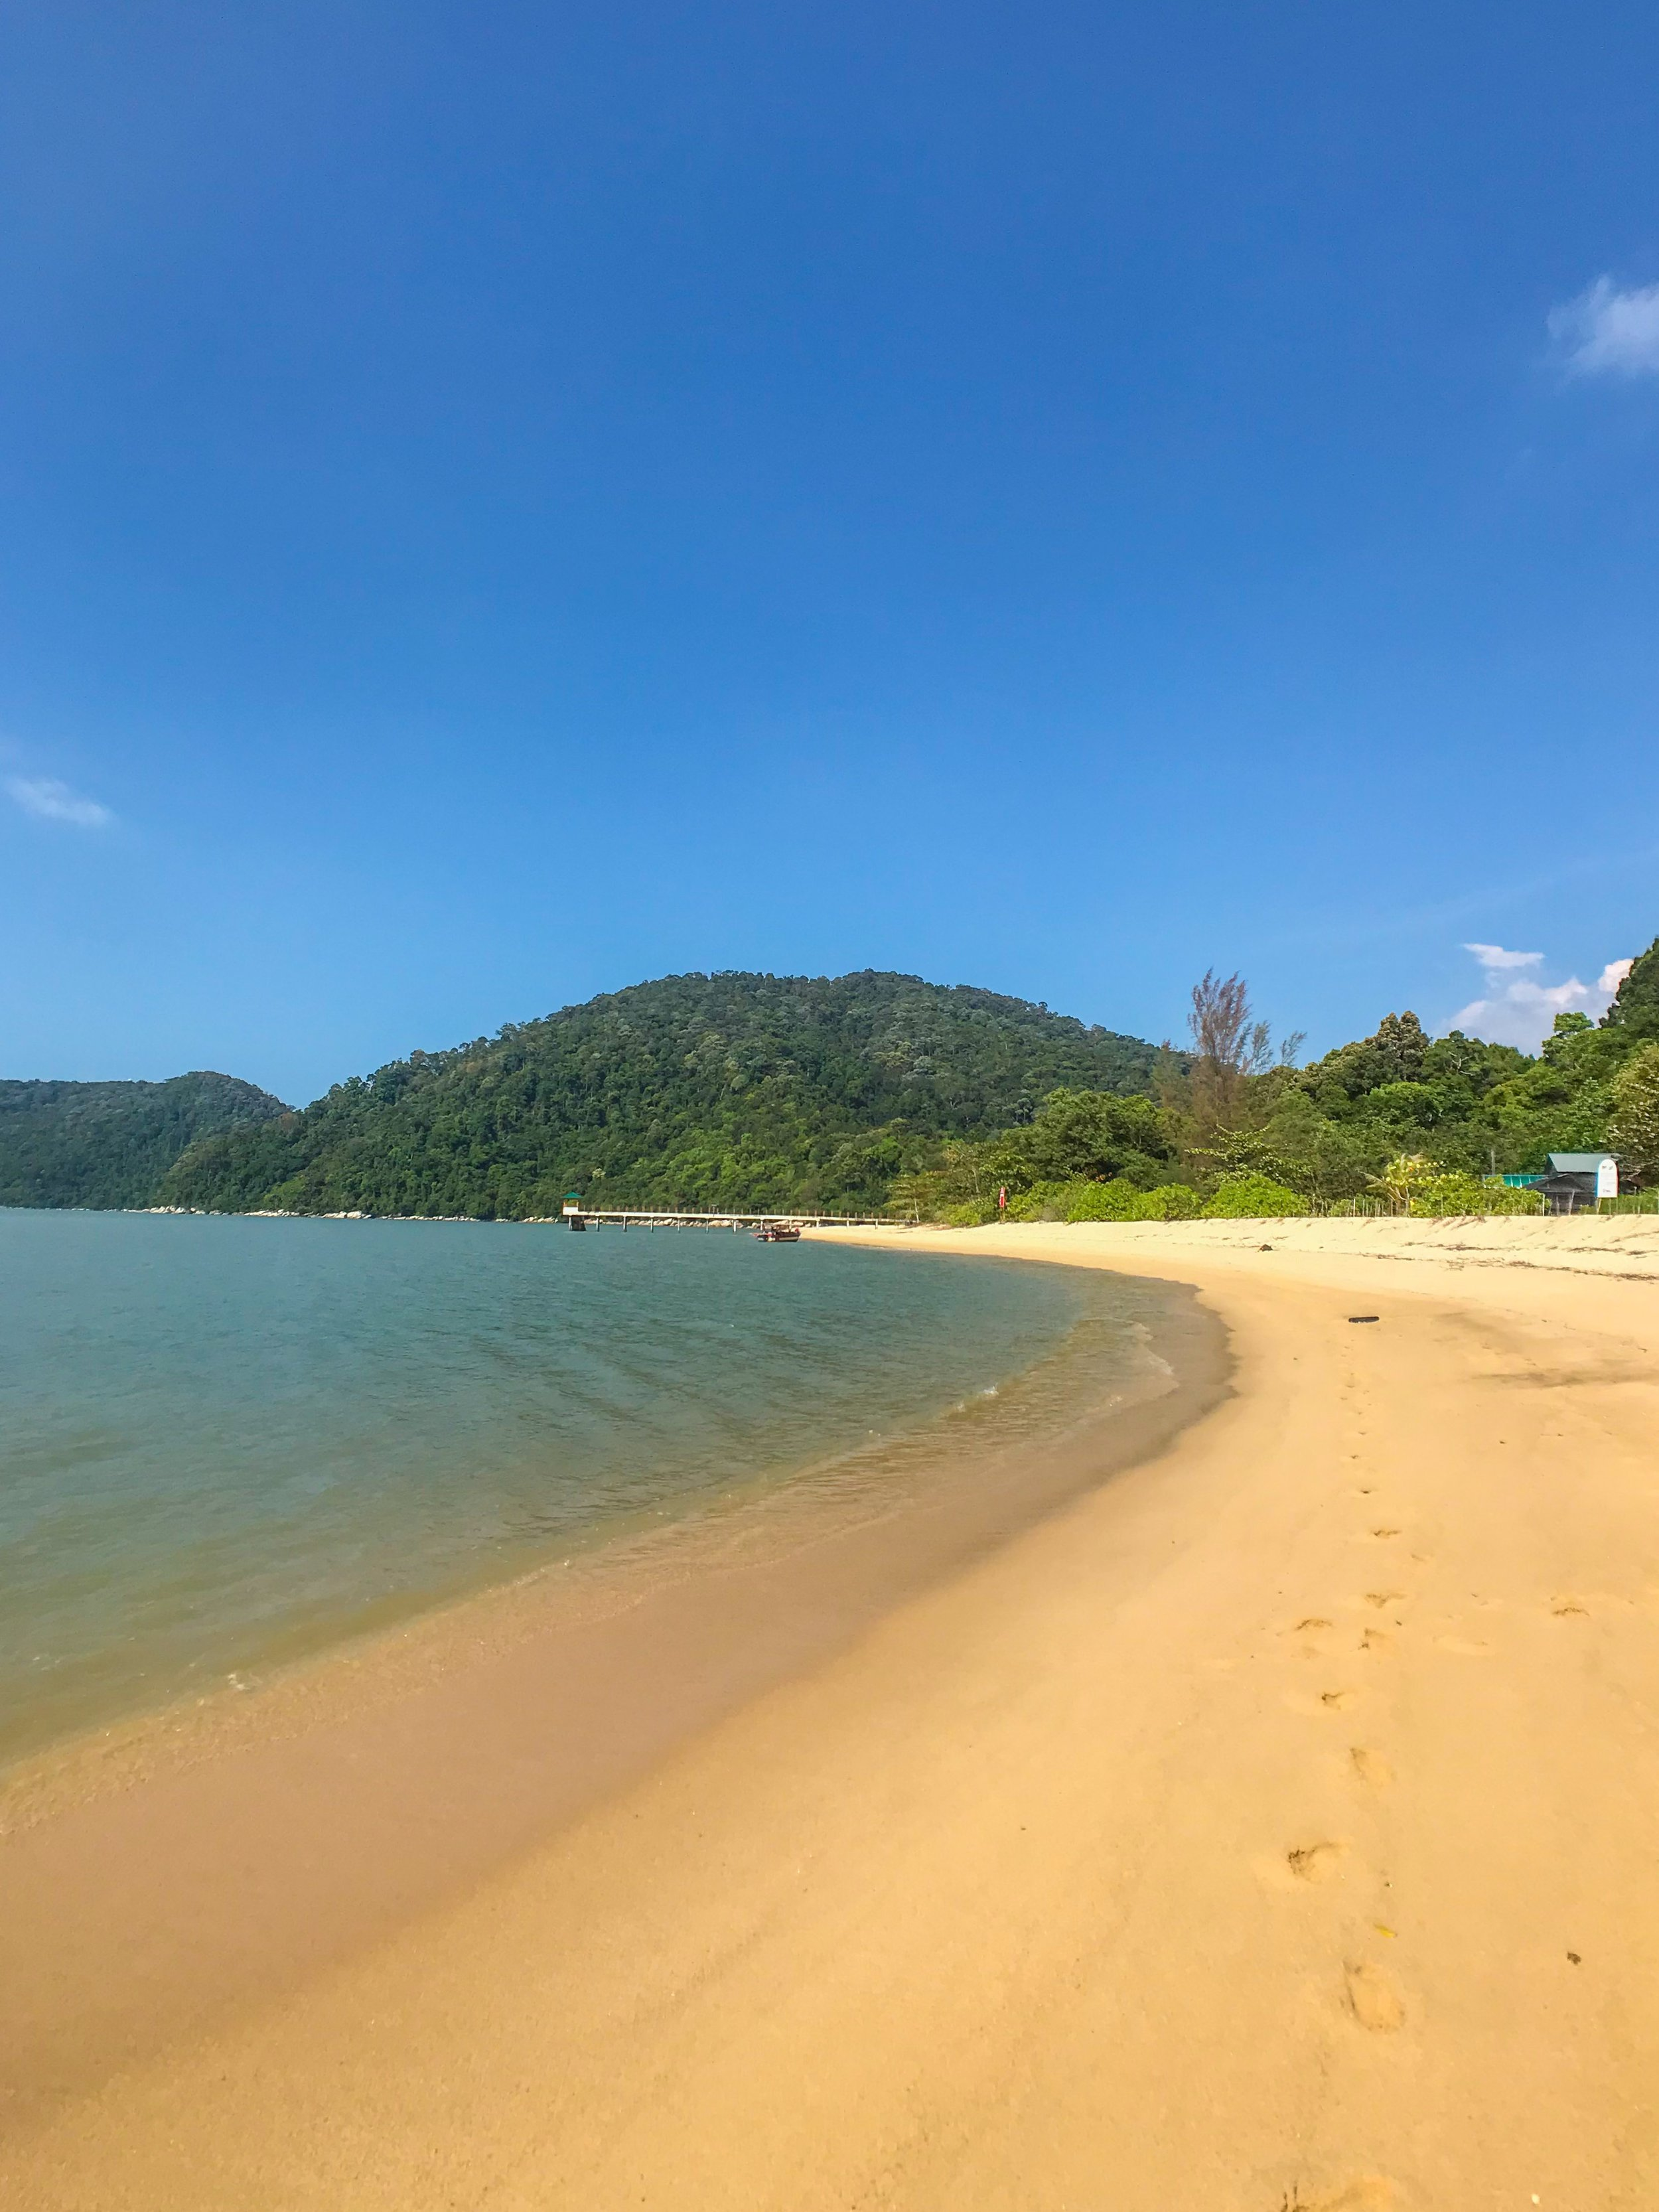 Malaysia's beaches are less crowded than Thailand's